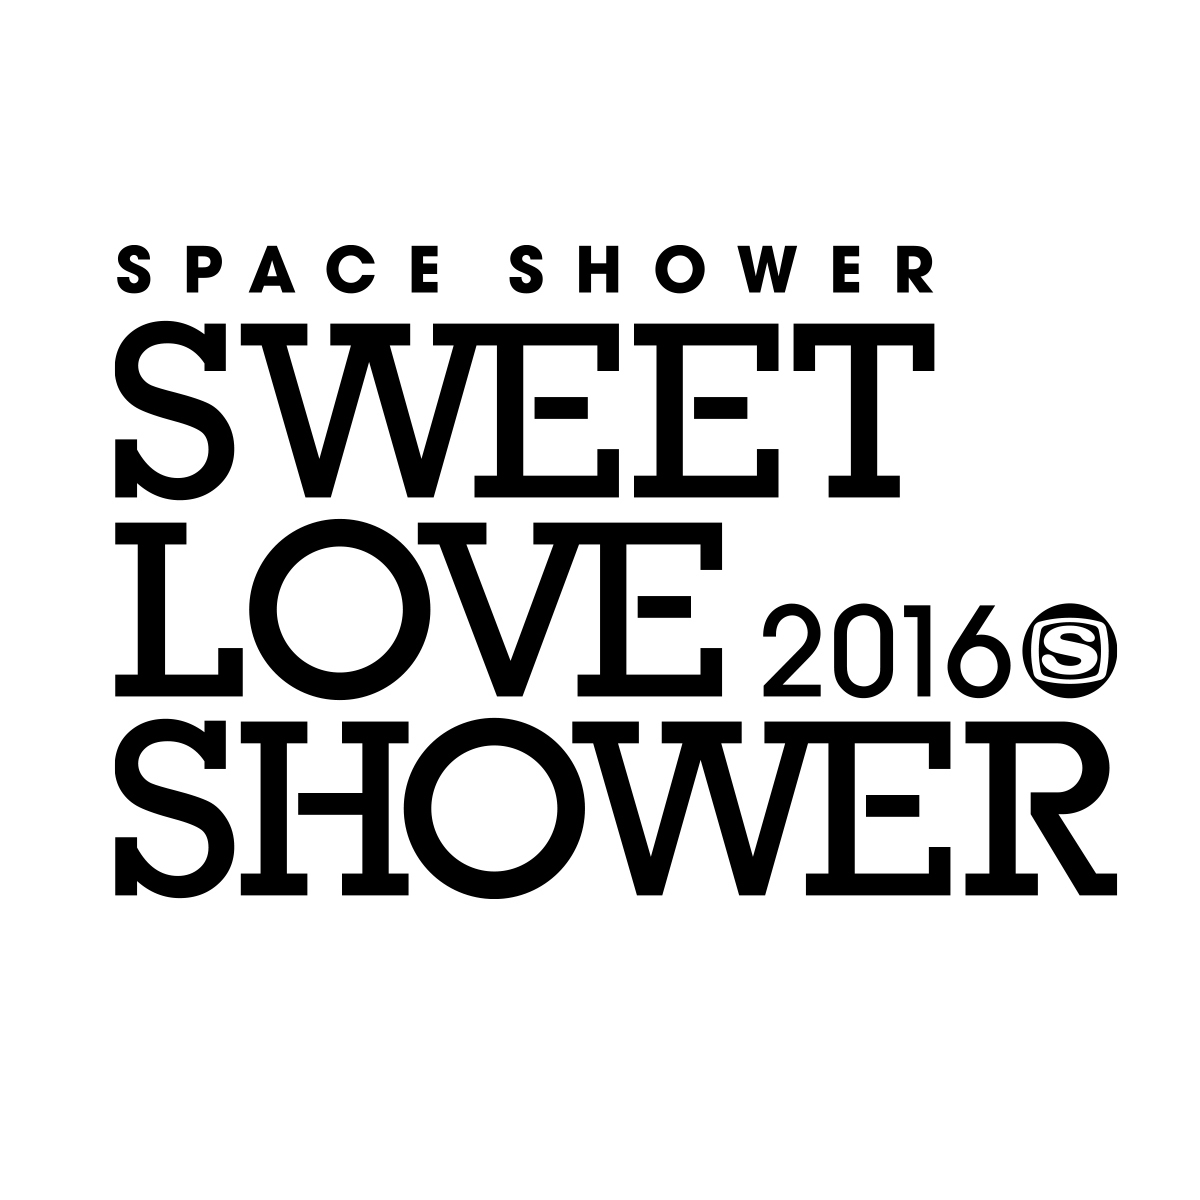 『SPACE SHOWER SWEET LOVE SHOWER 2016』